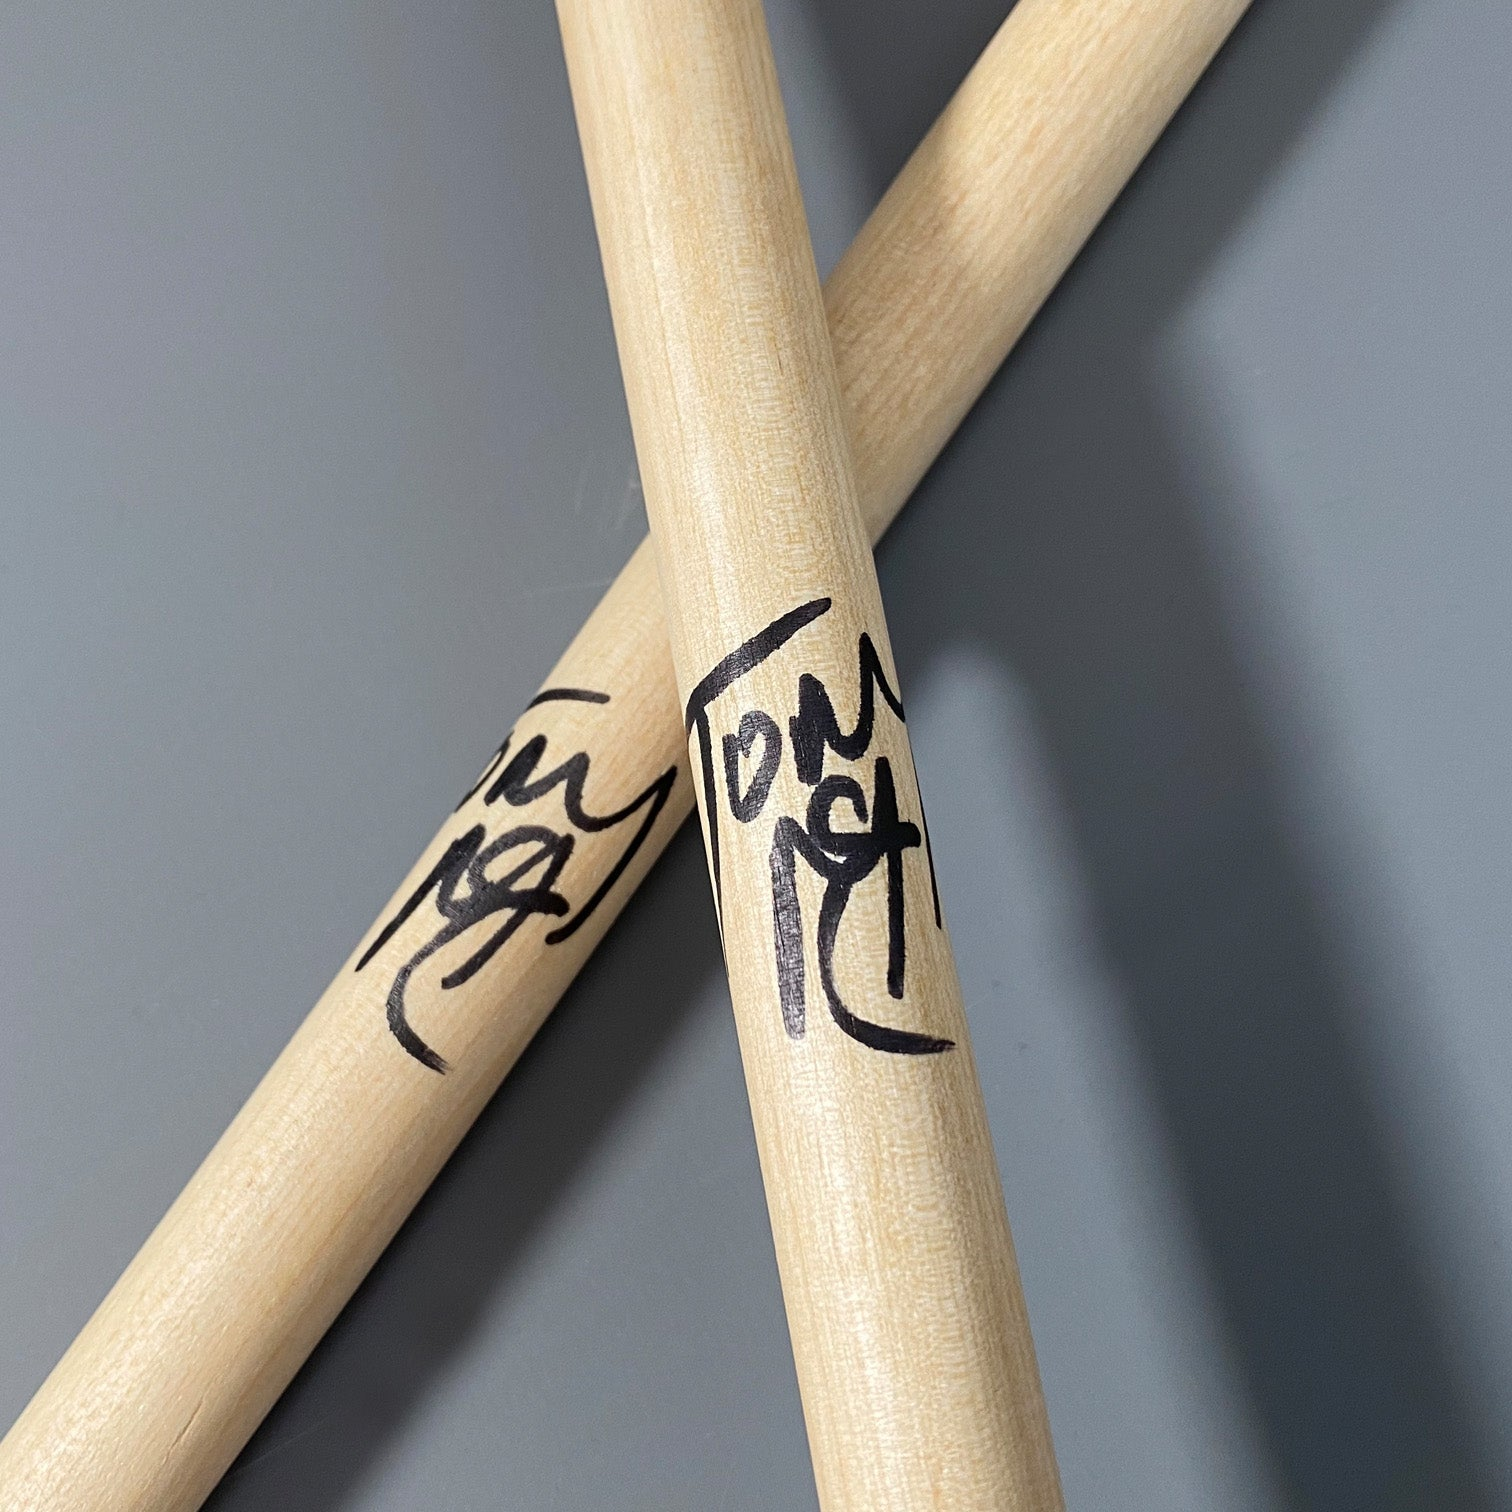 Tony McCarroll - Personally signed drumsticks